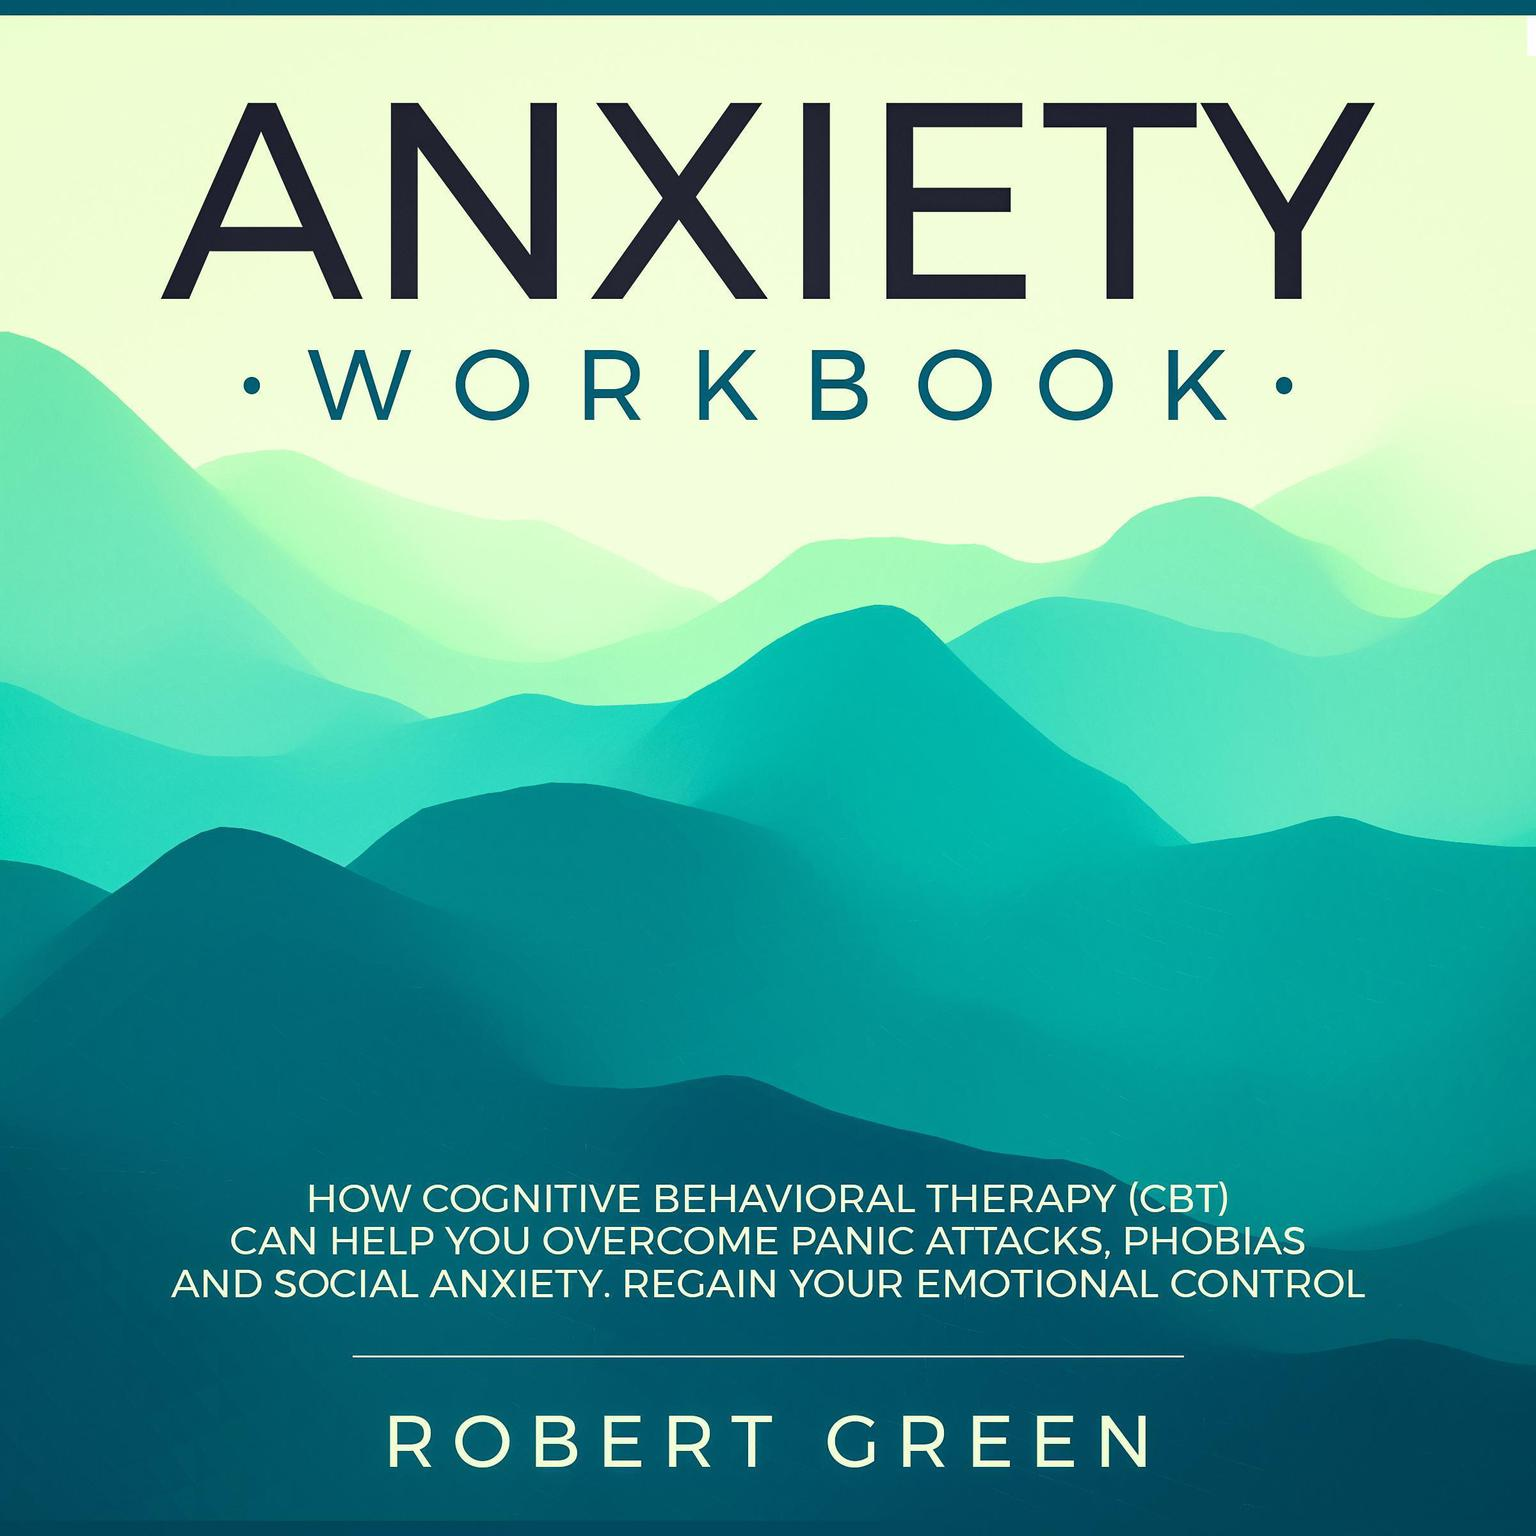 Printable ANXIETY WORKBOOK: HOW COGNITIVE BEHAVIORAL THERAPY (CBT) CAN HELP YOU OVERCOME PANIC ATTACKS, PHOBIAS AND SOCIAL ANXIETY. REGAIN YOUR EMOTIONAL CONTROL: How Cognitive Behavioral Therapy (CBT) Can Help You Overcome Panic Attacks, Phobias and Social Anxiety. Regain Your Emotional Control. Audiobook Cover Art